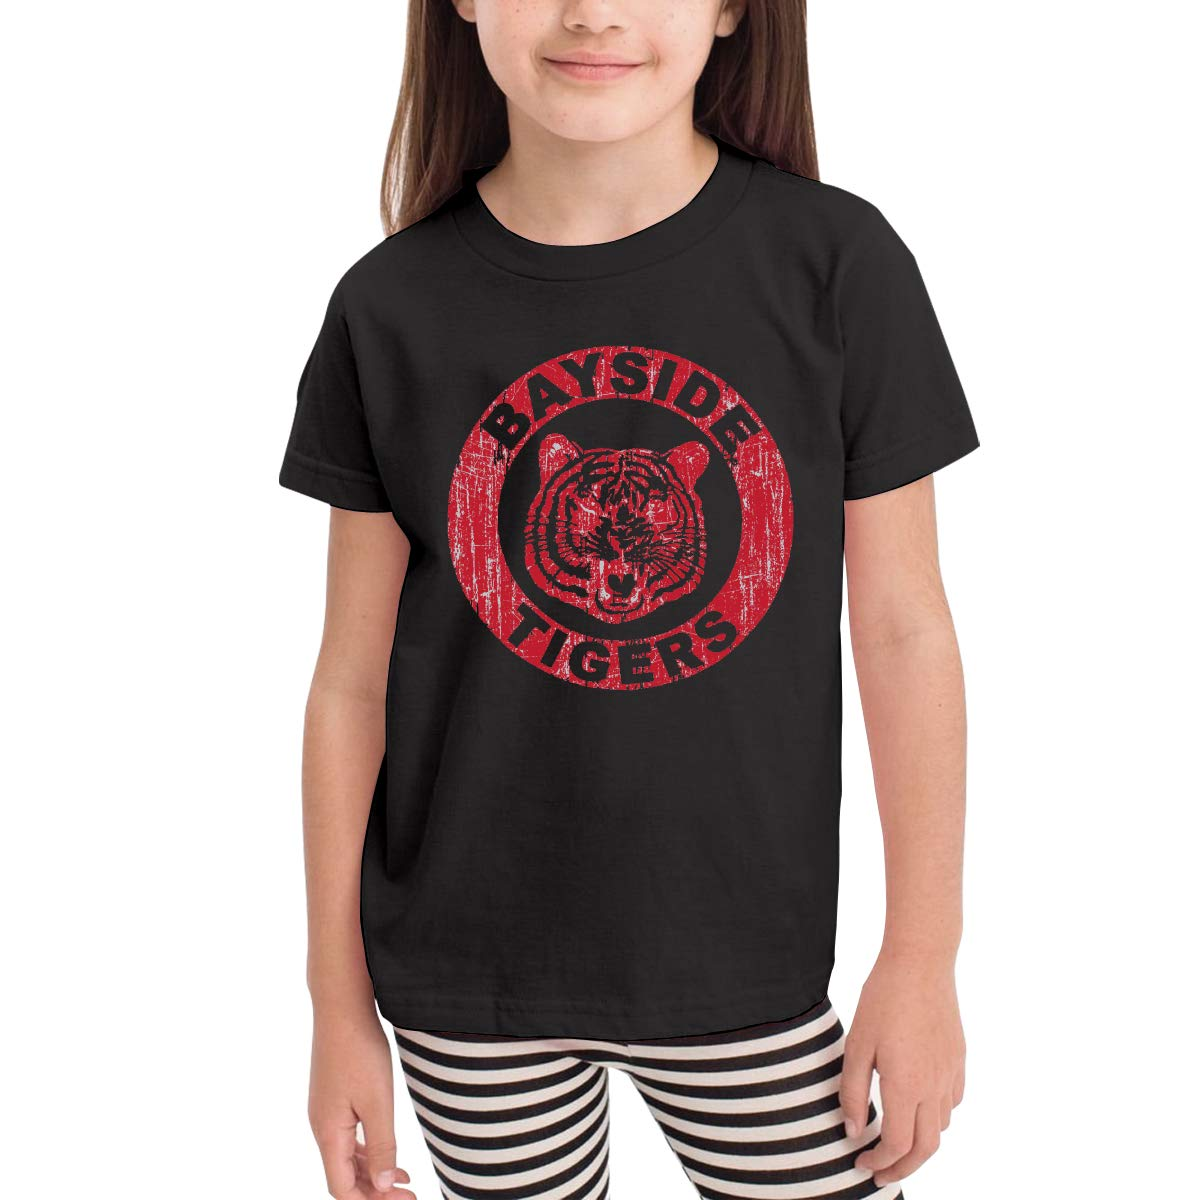 Bayside Tigers 100/% Cotton Toddler Baby Boys Girls Kids Short Sleeve T Shirt Top Tee Clothes 2-6 T